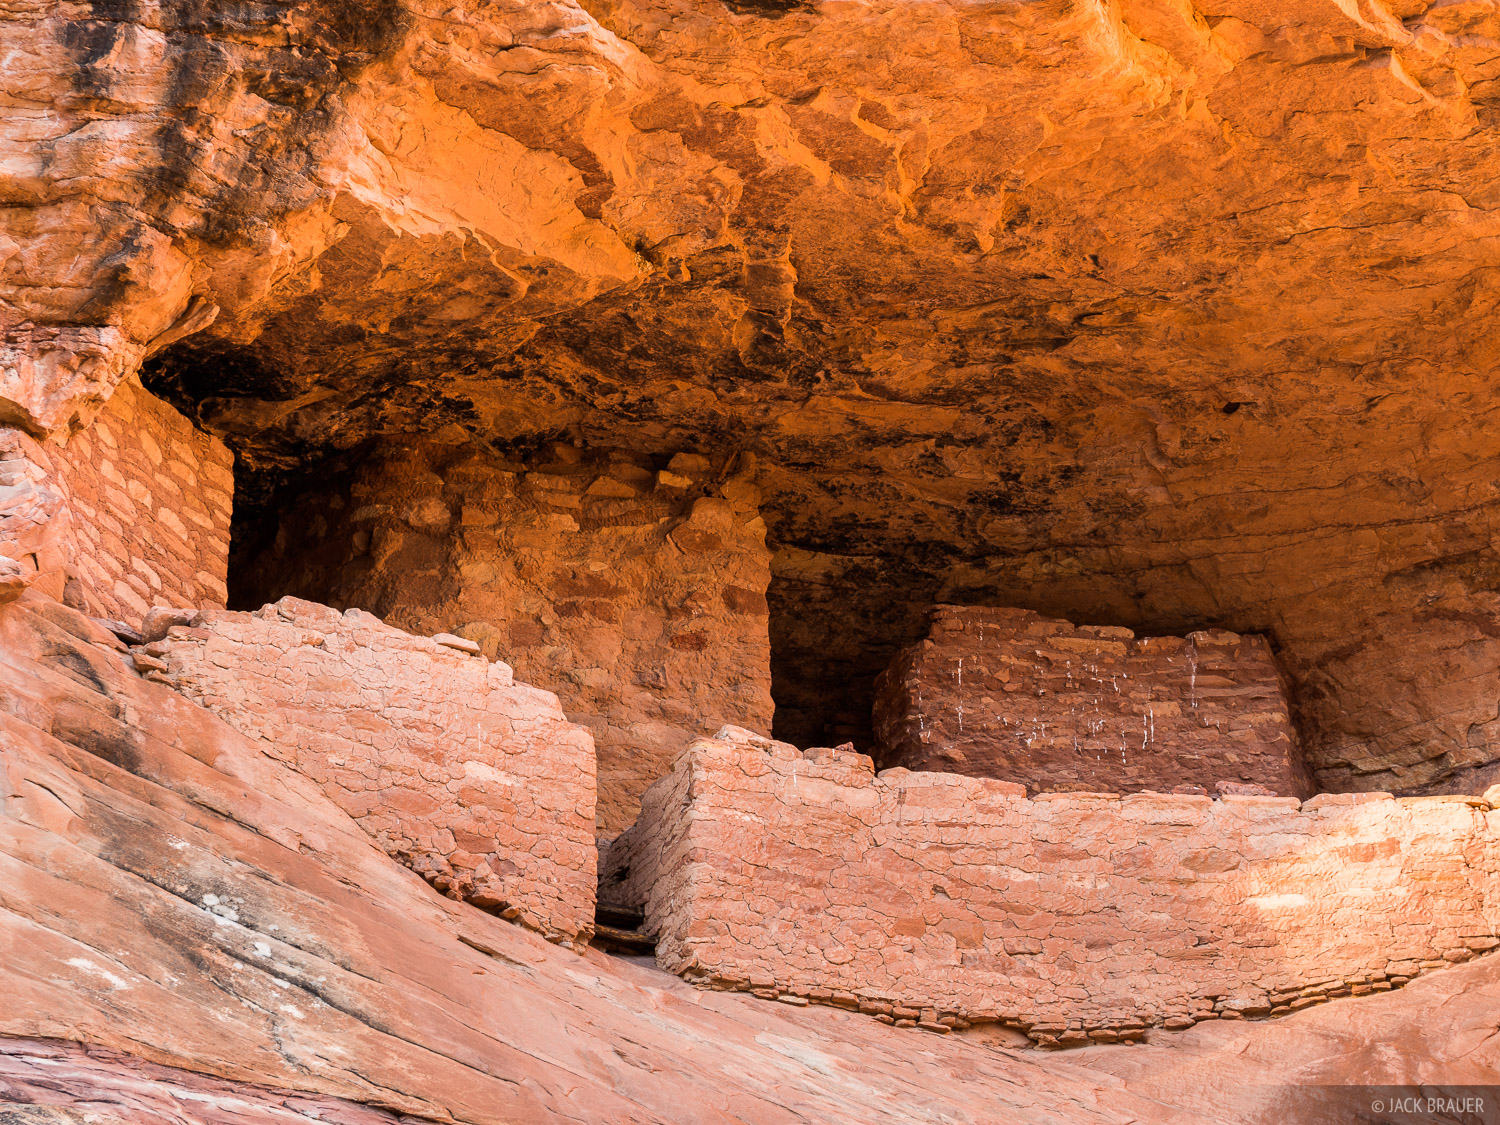 Cedar Mesa, Mule Canyon, Utah, ruins, Ancestral Puebloan, Bears Ears National Monument, photo